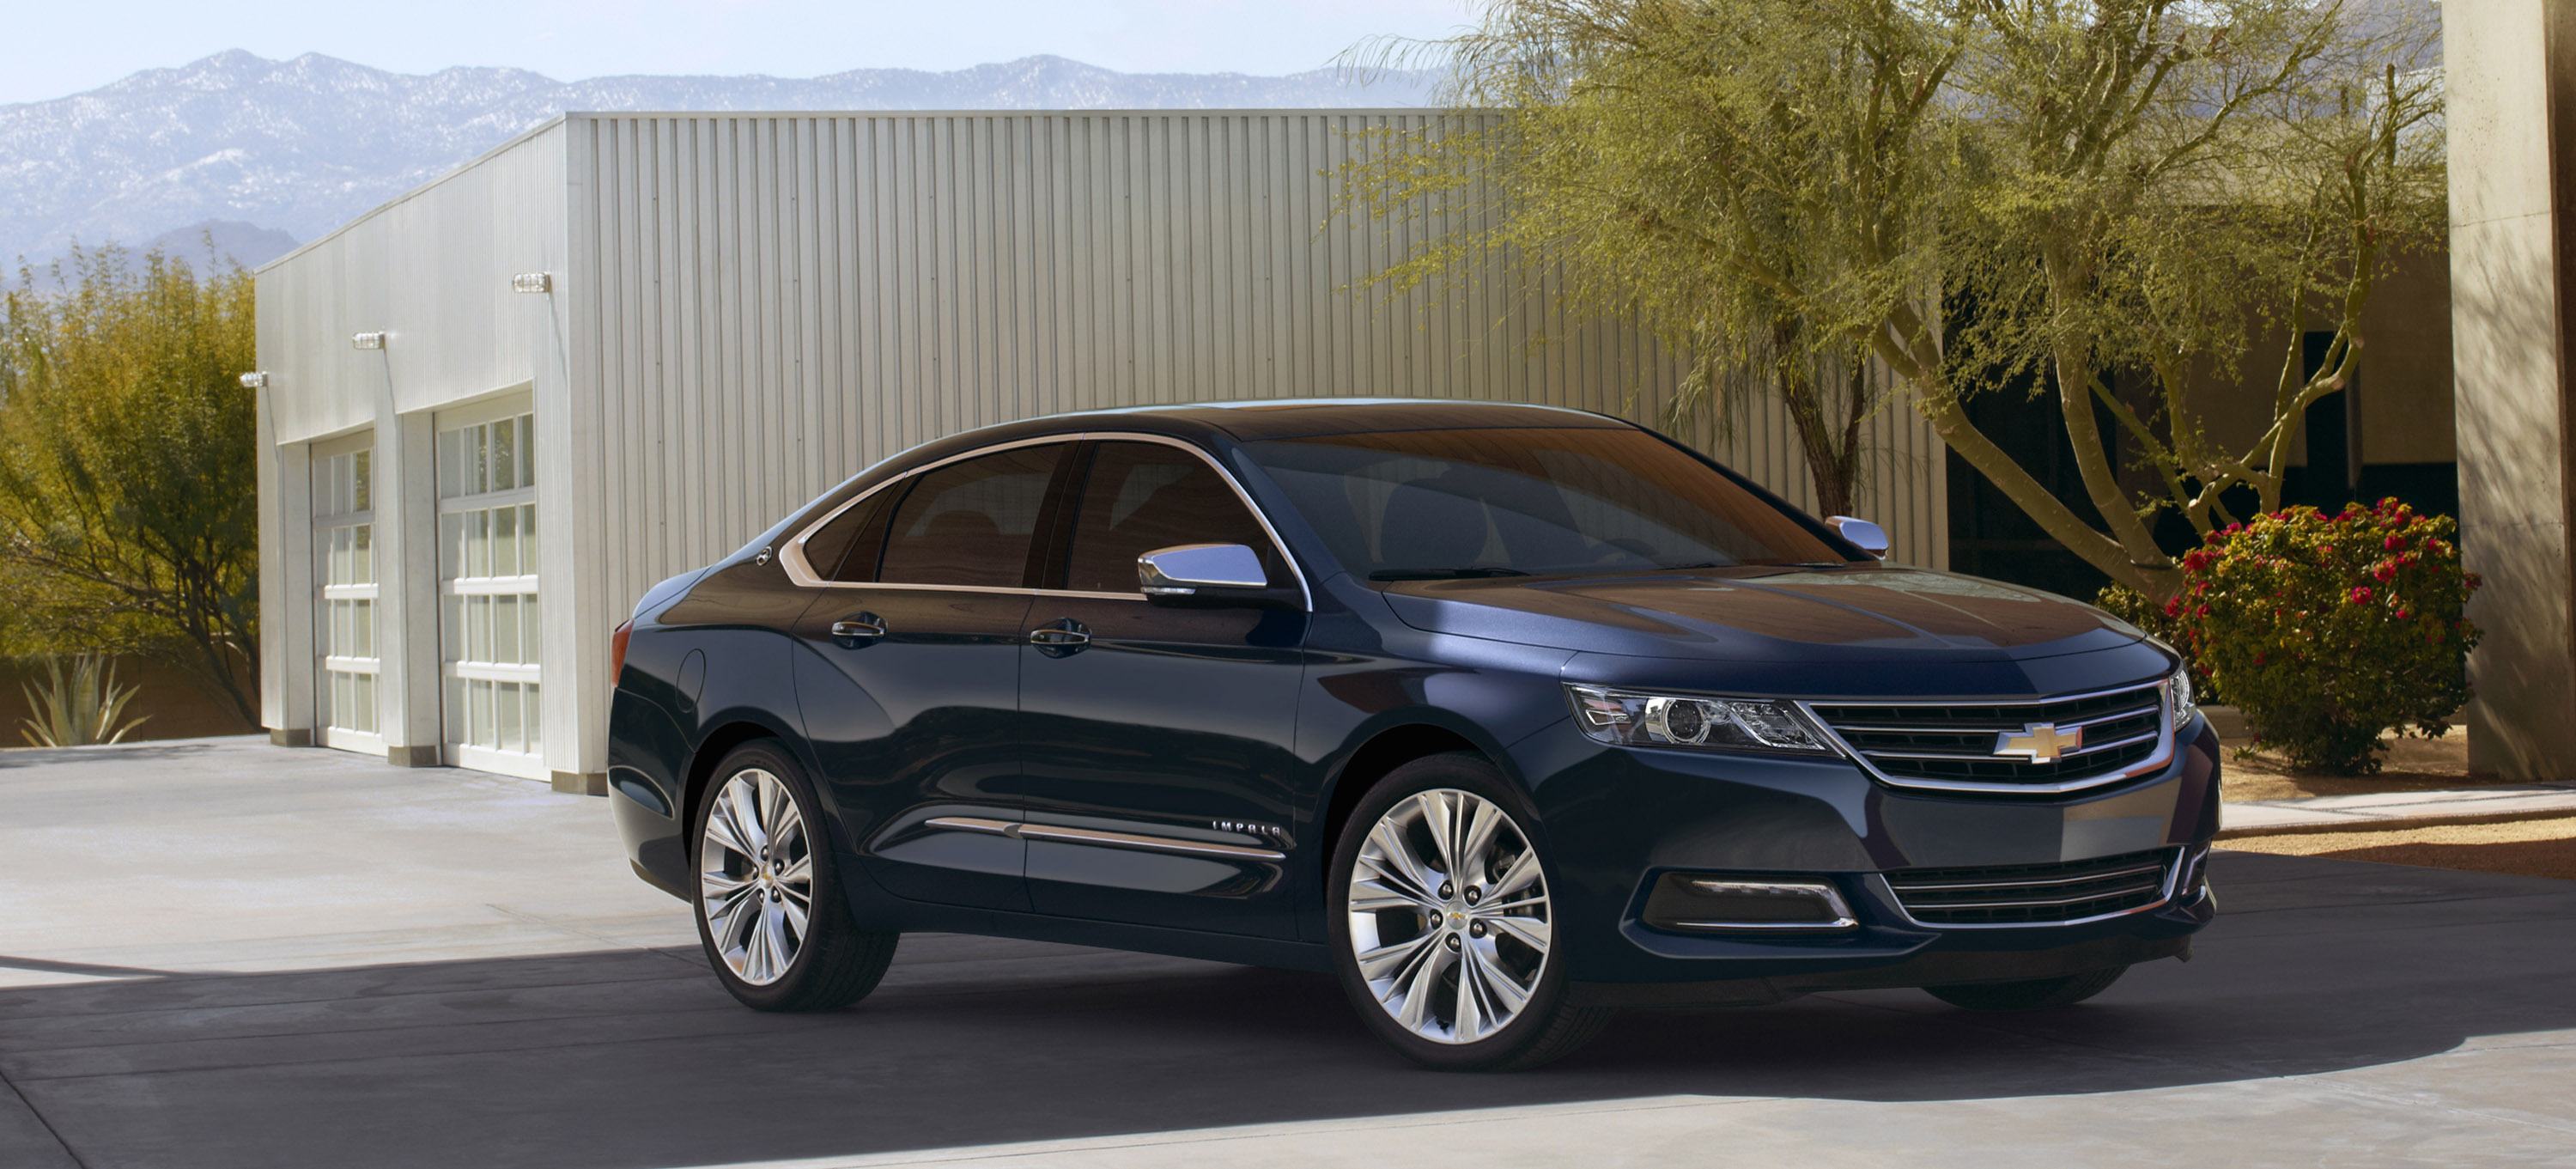 2014 chevrolet impala specifications announced. Black Bedroom Furniture Sets. Home Design Ideas